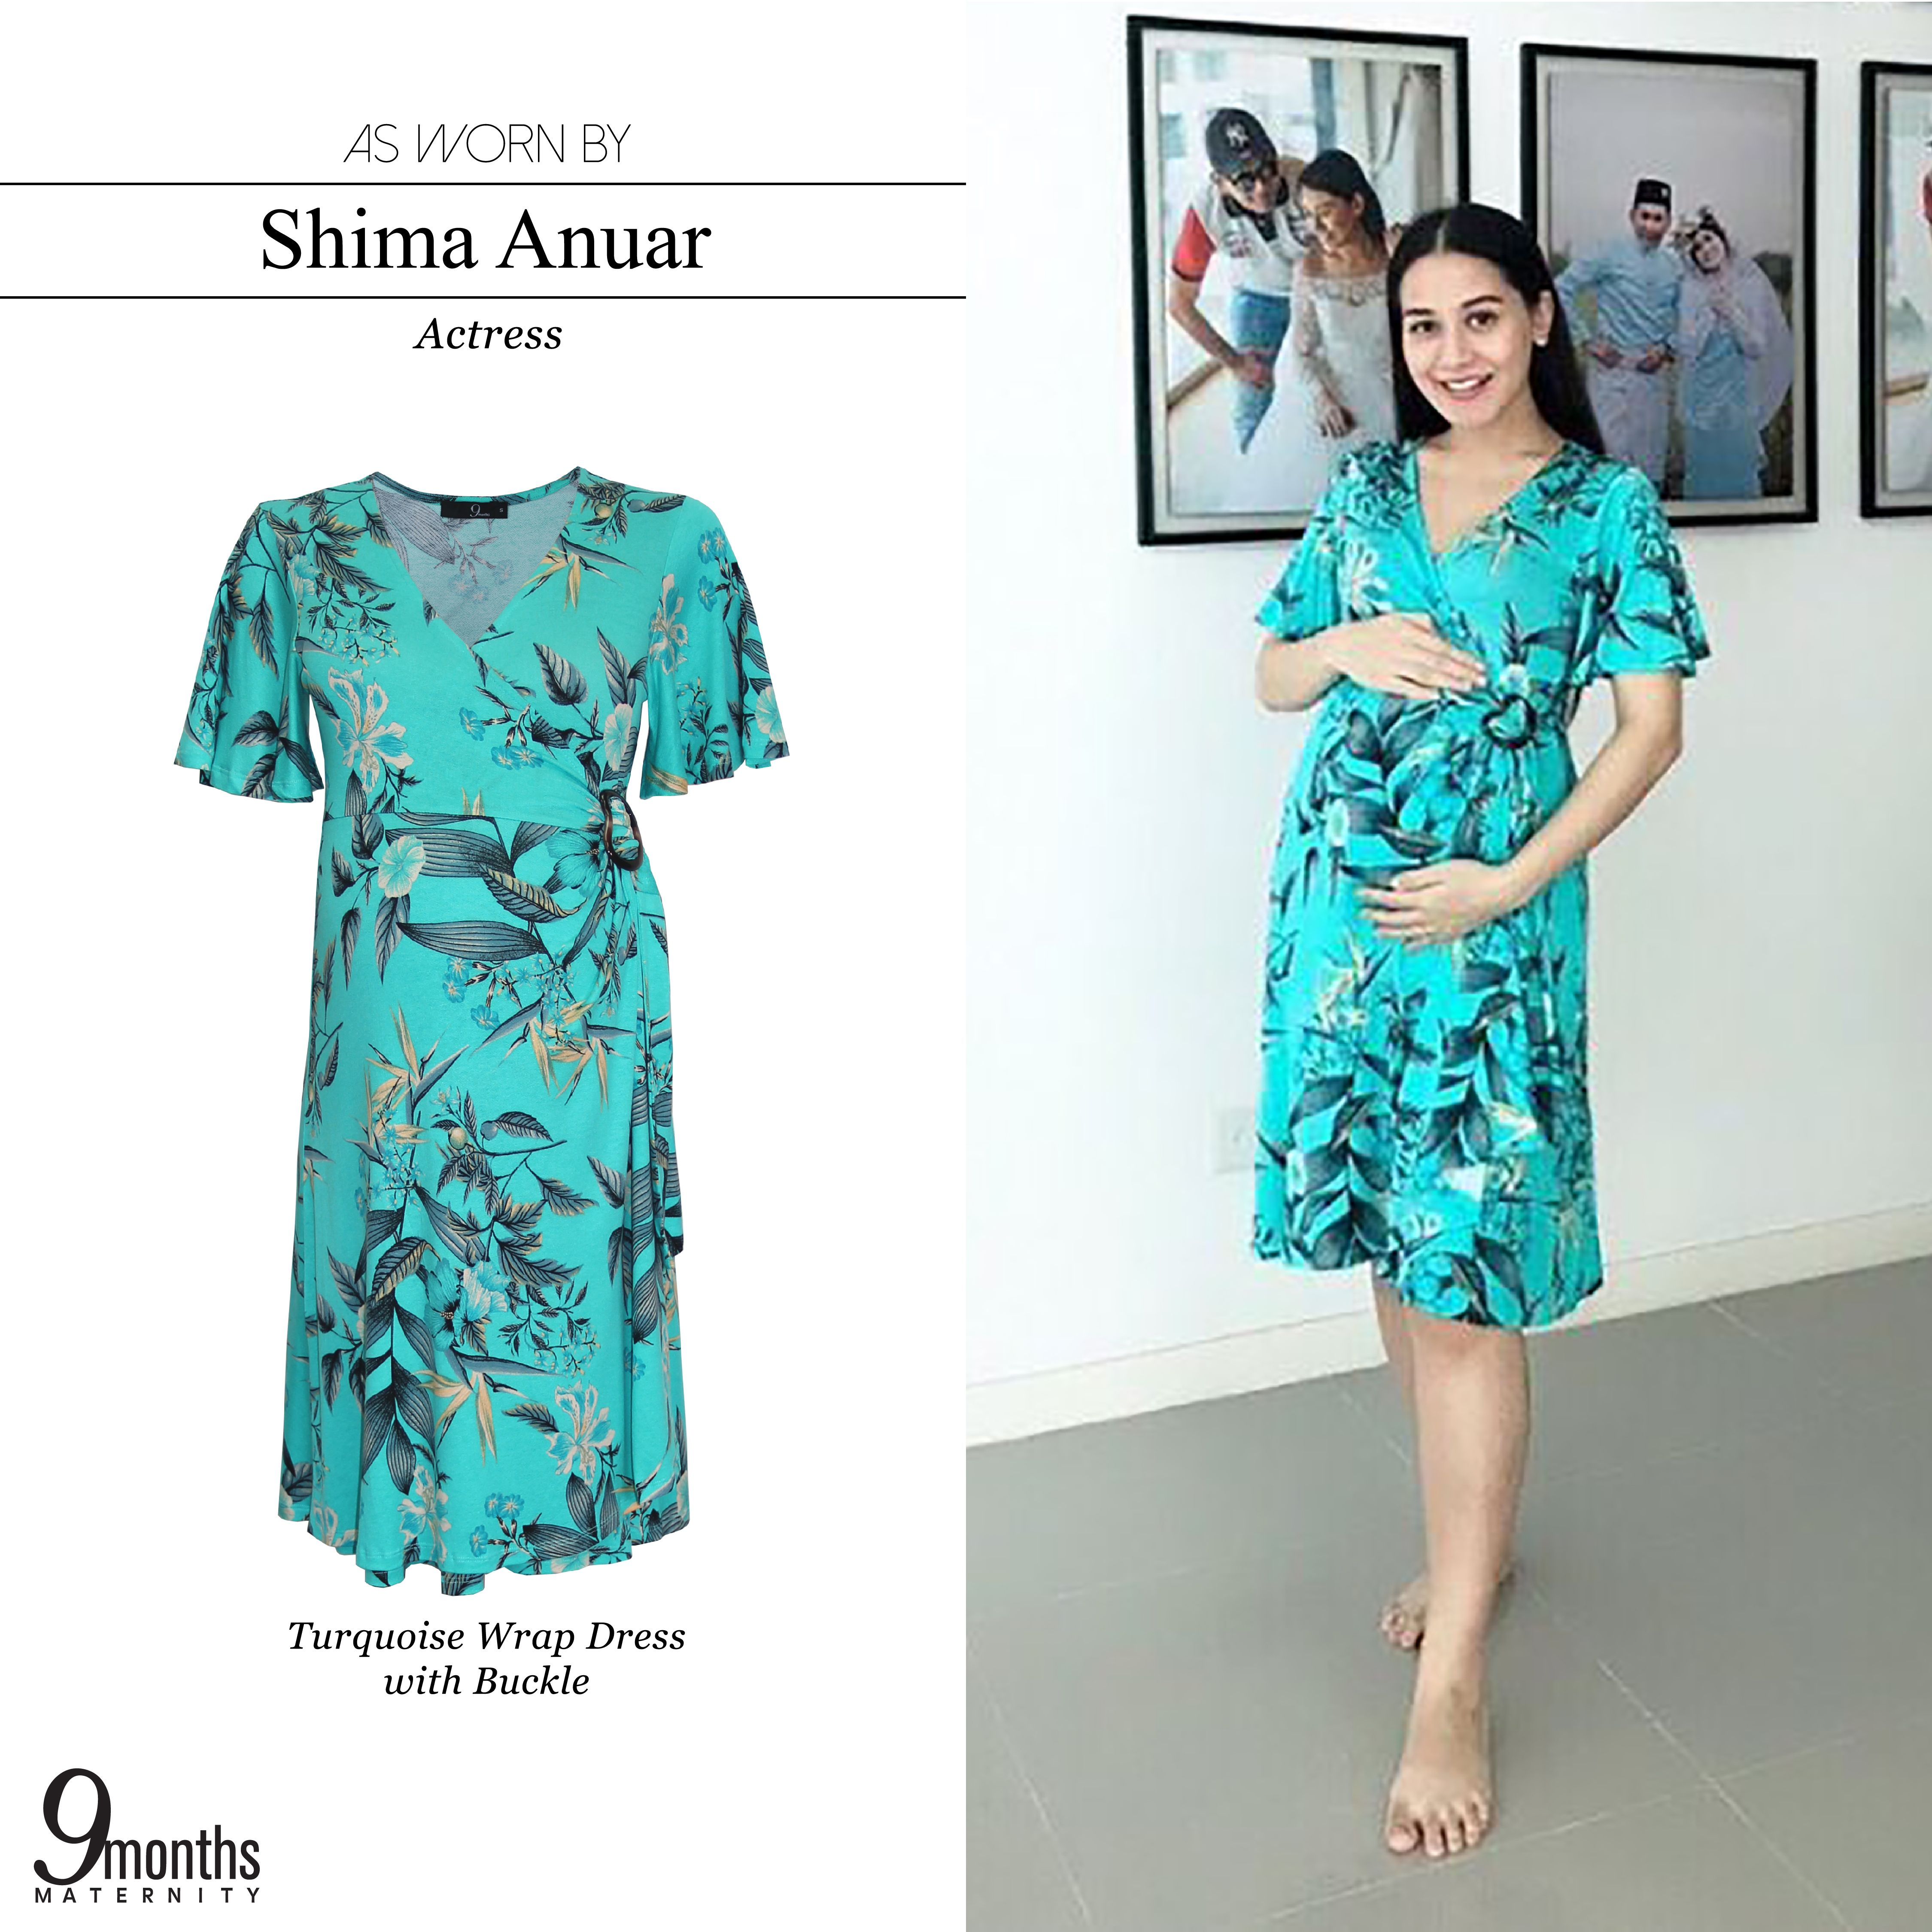 Flatter Your Blossoming Bump In Our Gorgeous Floral Nursing Wrap Dress 9monthsmaternity Maternityfashion Ma Turquoise Wrap Dress Nursing Dress Dresses [ 4500 x 4500 Pixel ]